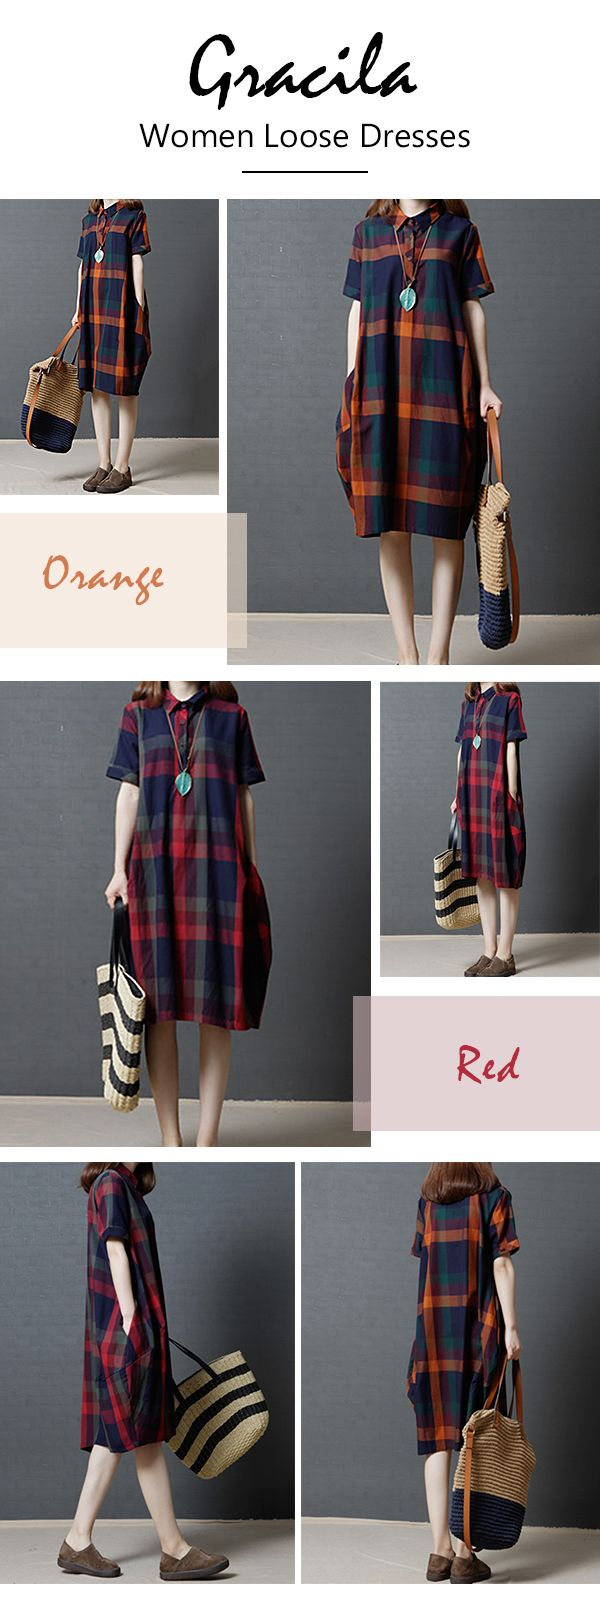 US$ 22.18 Gracila Plaid Short Sleeve Lapel Vintage Women Loose Dresses